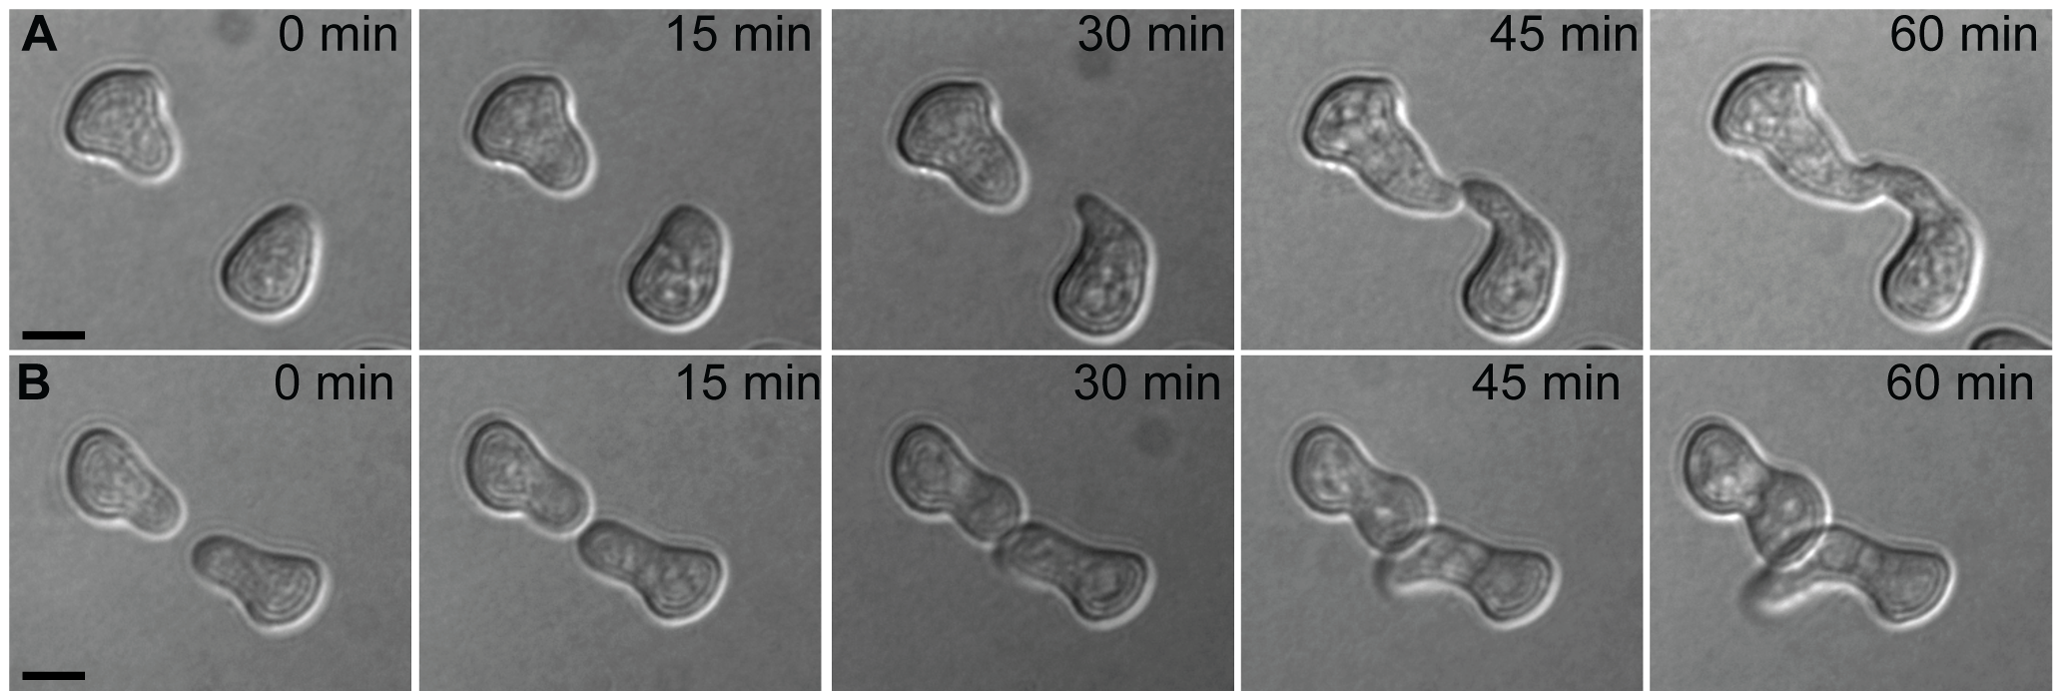 Chemotropic interactions and cell fusion between genetically identical conidial germlings.